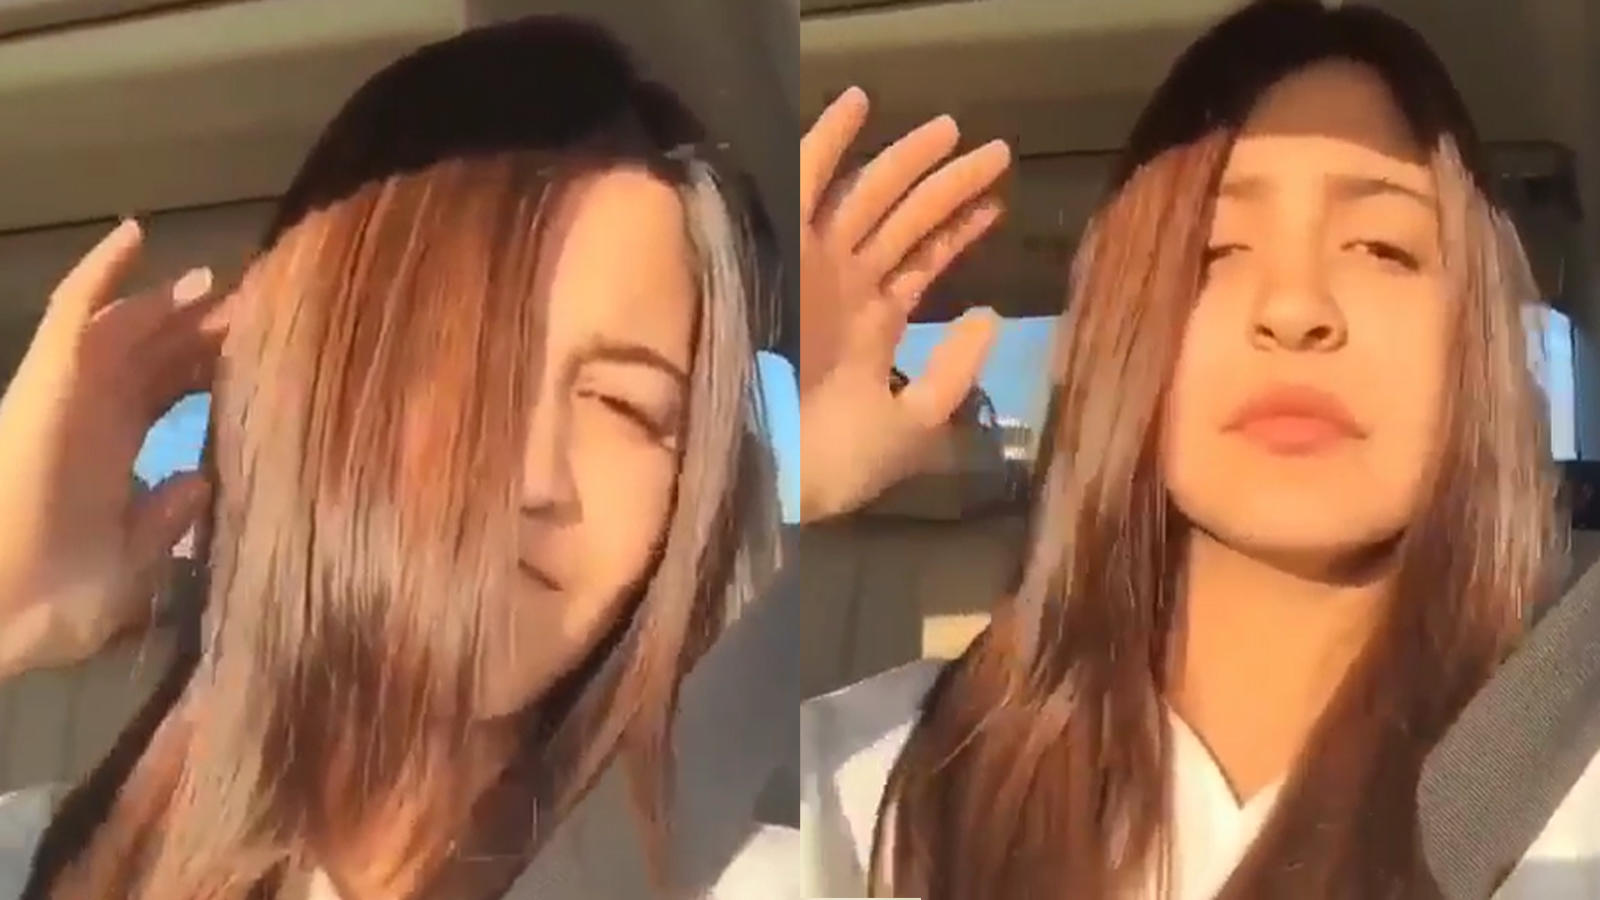 anushka-sharma-vibing-hard-in-her-car-to-a-peppy-punjabi-song-in-this-old-video-will-remind-you-of-pre-covid-19-weekends